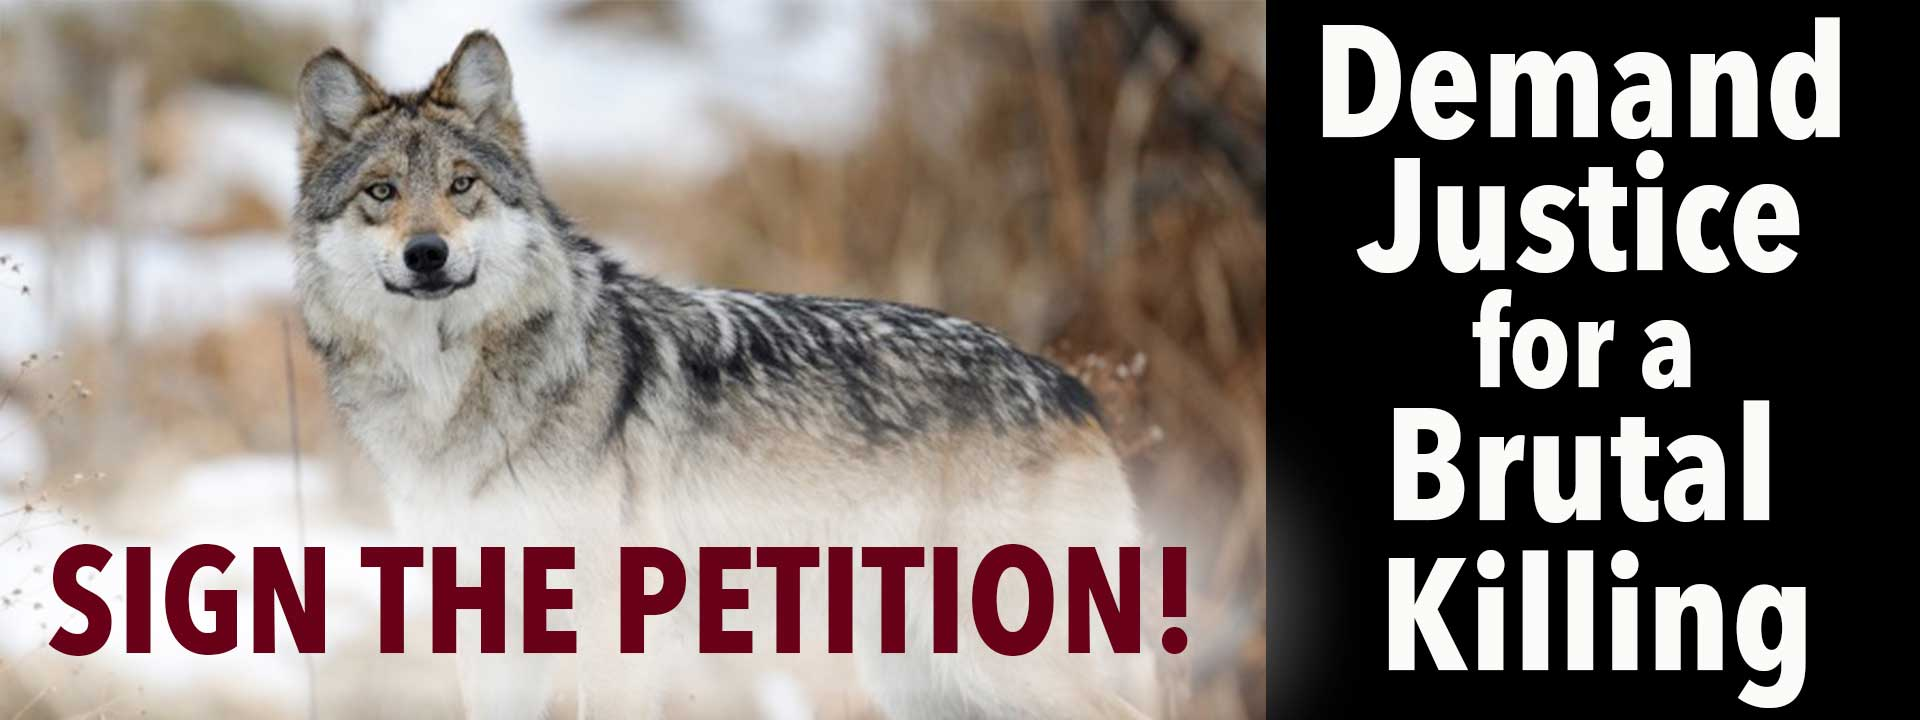 Sign the Petition - Demand Justice for a Brutal Killing